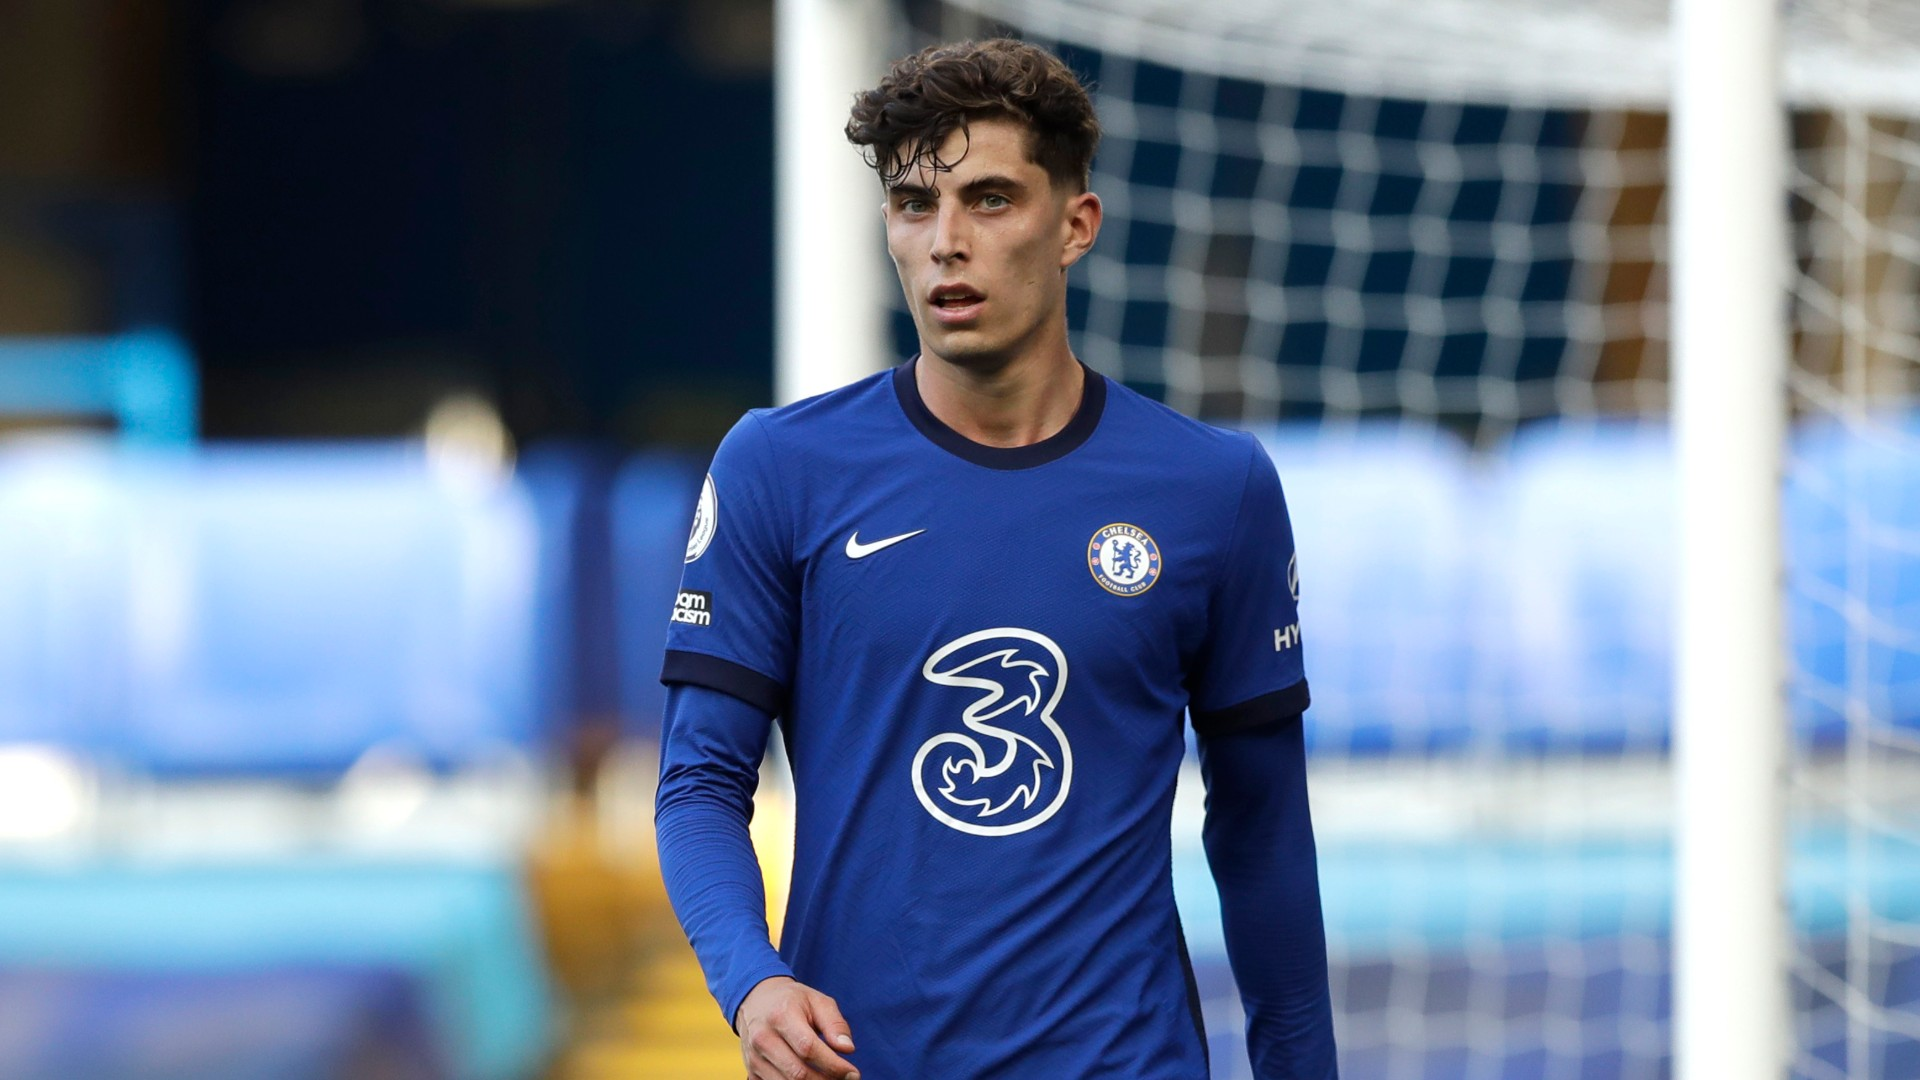 'Havertz & Chelsea's summer signings need patience' - Cole ...